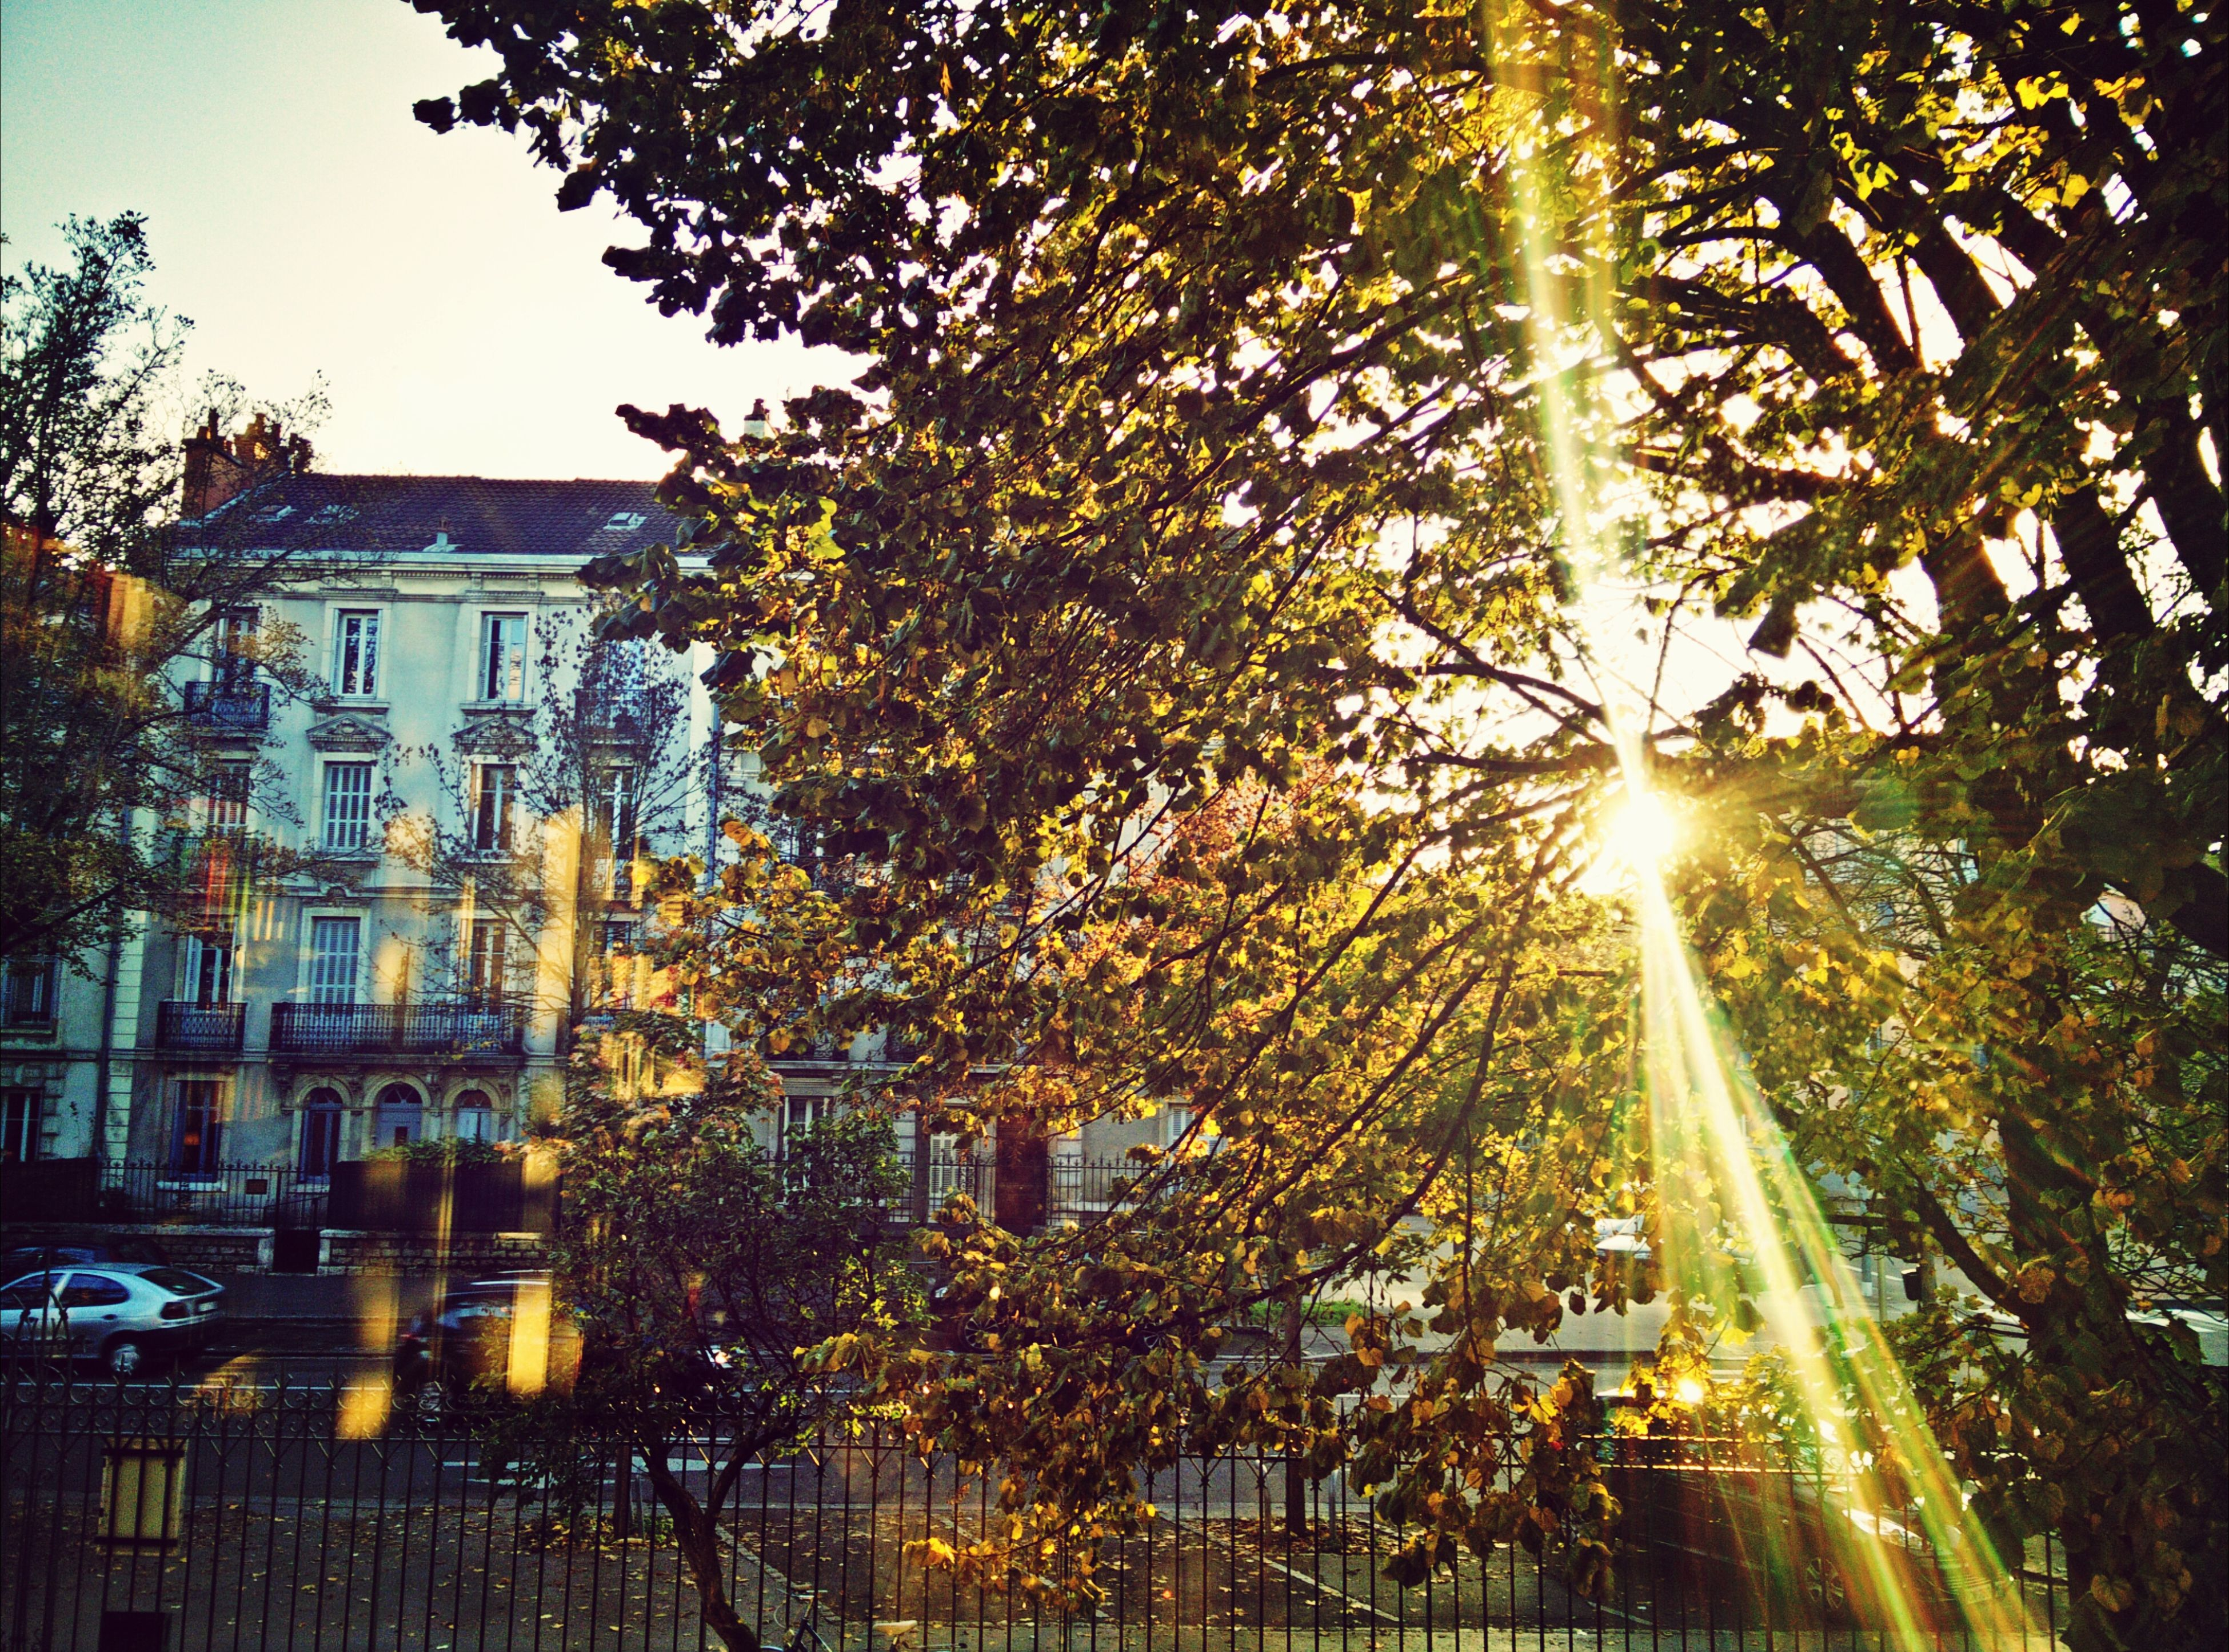 tree, architecture, building exterior, sun, built structure, sunbeam, sunlight, lens flare, city, growth, low angle view, illuminated, sky, outdoors, bright, branch, building, tall - high, clear sky, no people